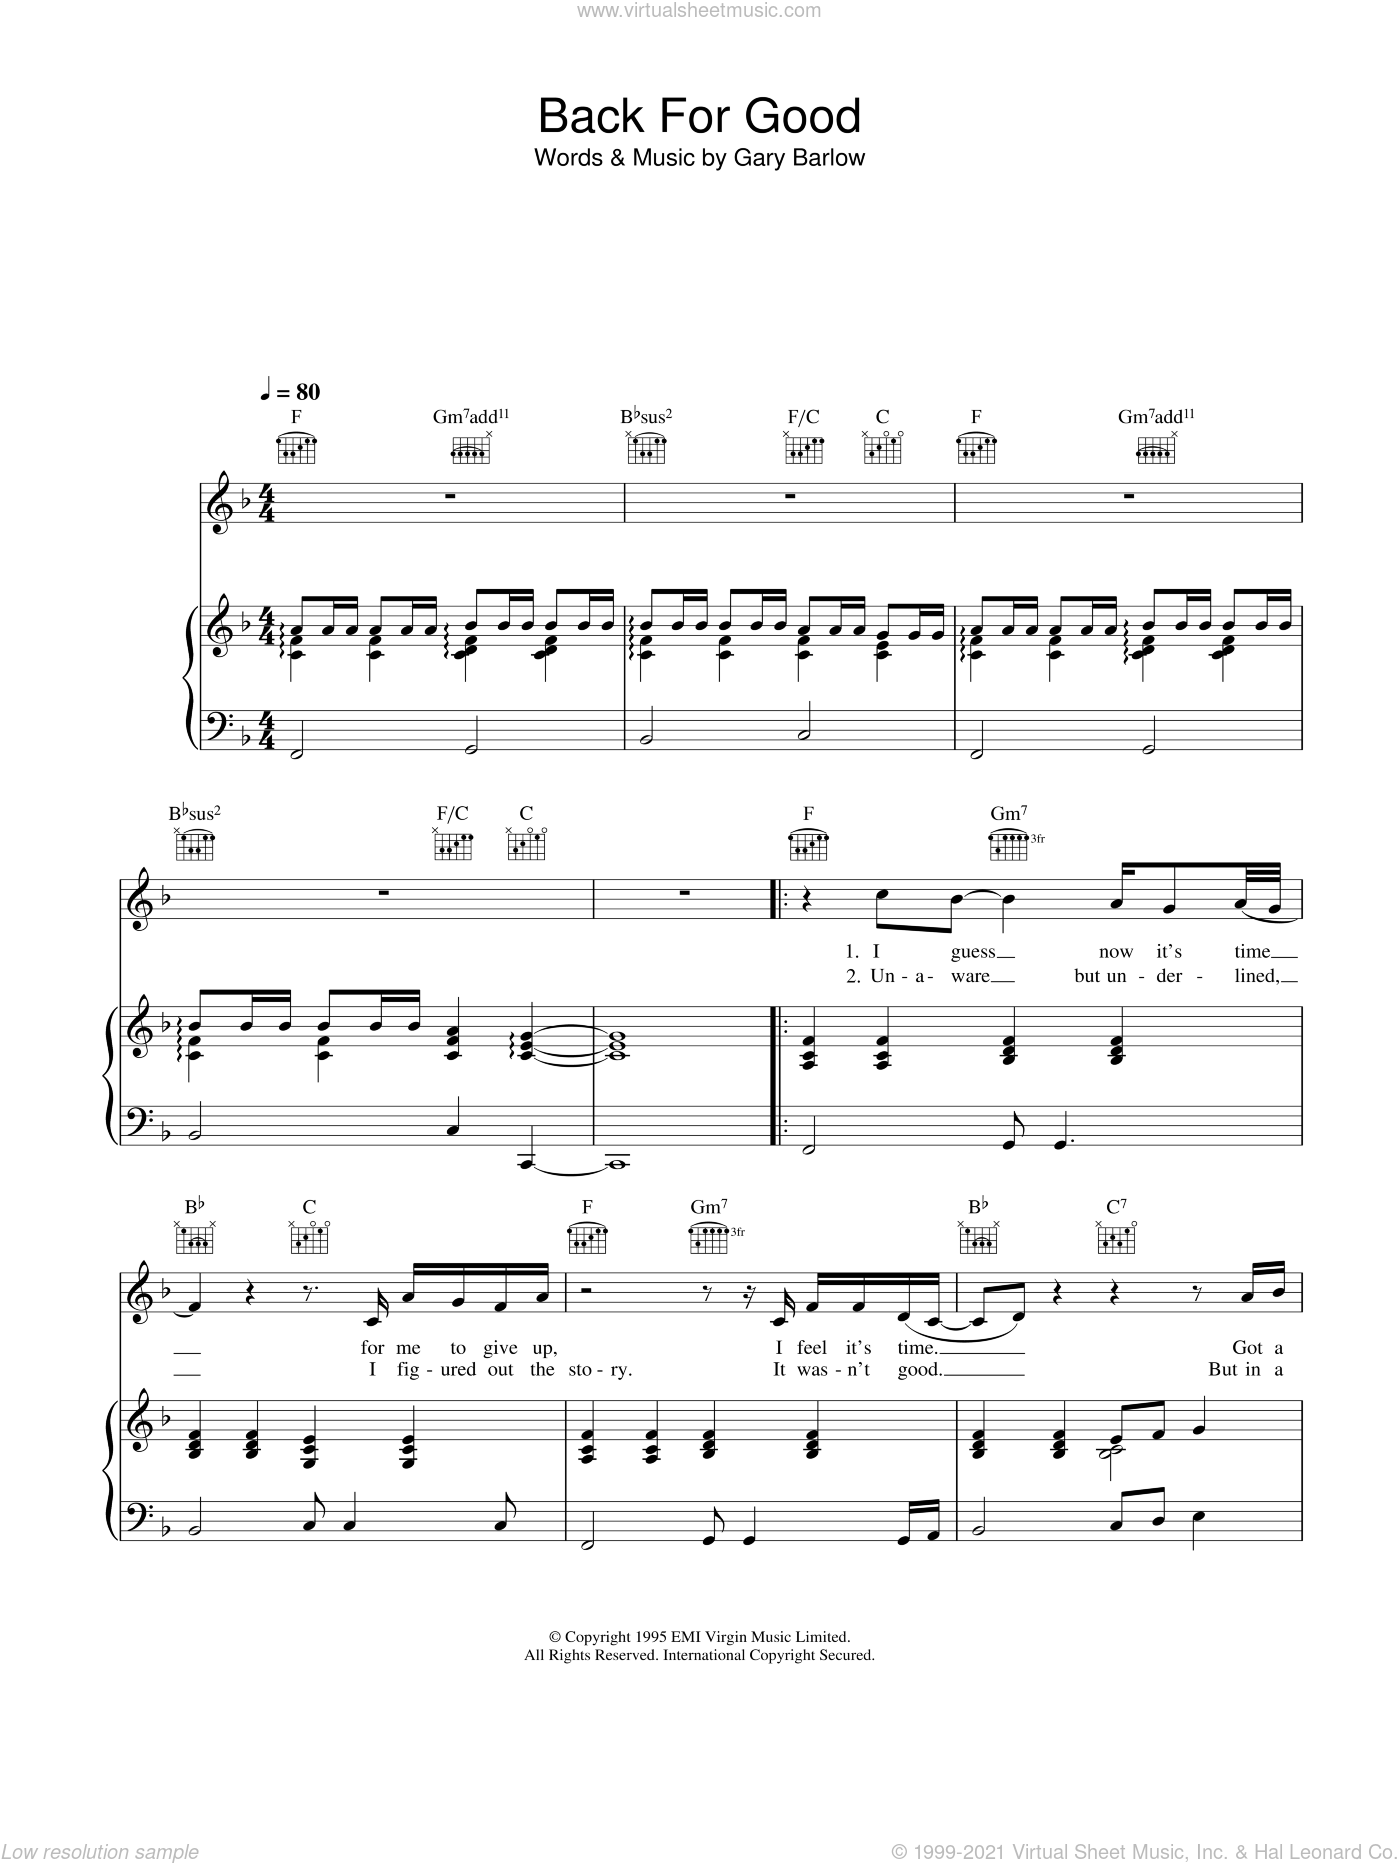 Back For Good sheet music for voice, piano or guitar by Take That, intermediate skill level